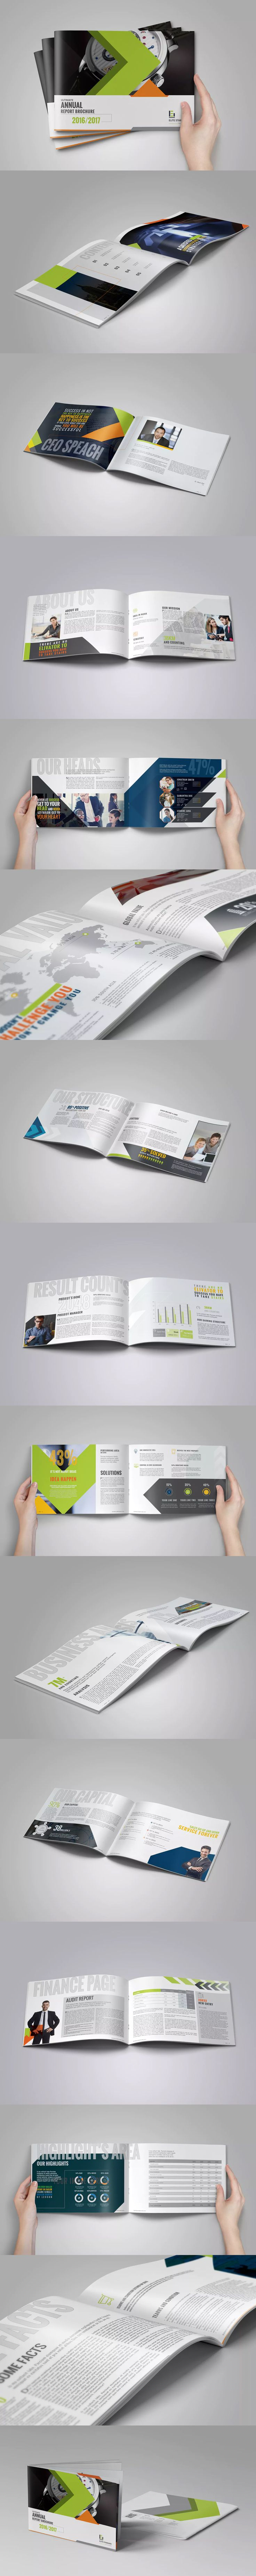 proposal report template%0A Landscape Annual Report Template InDesign INDD  A  and US Letter Size